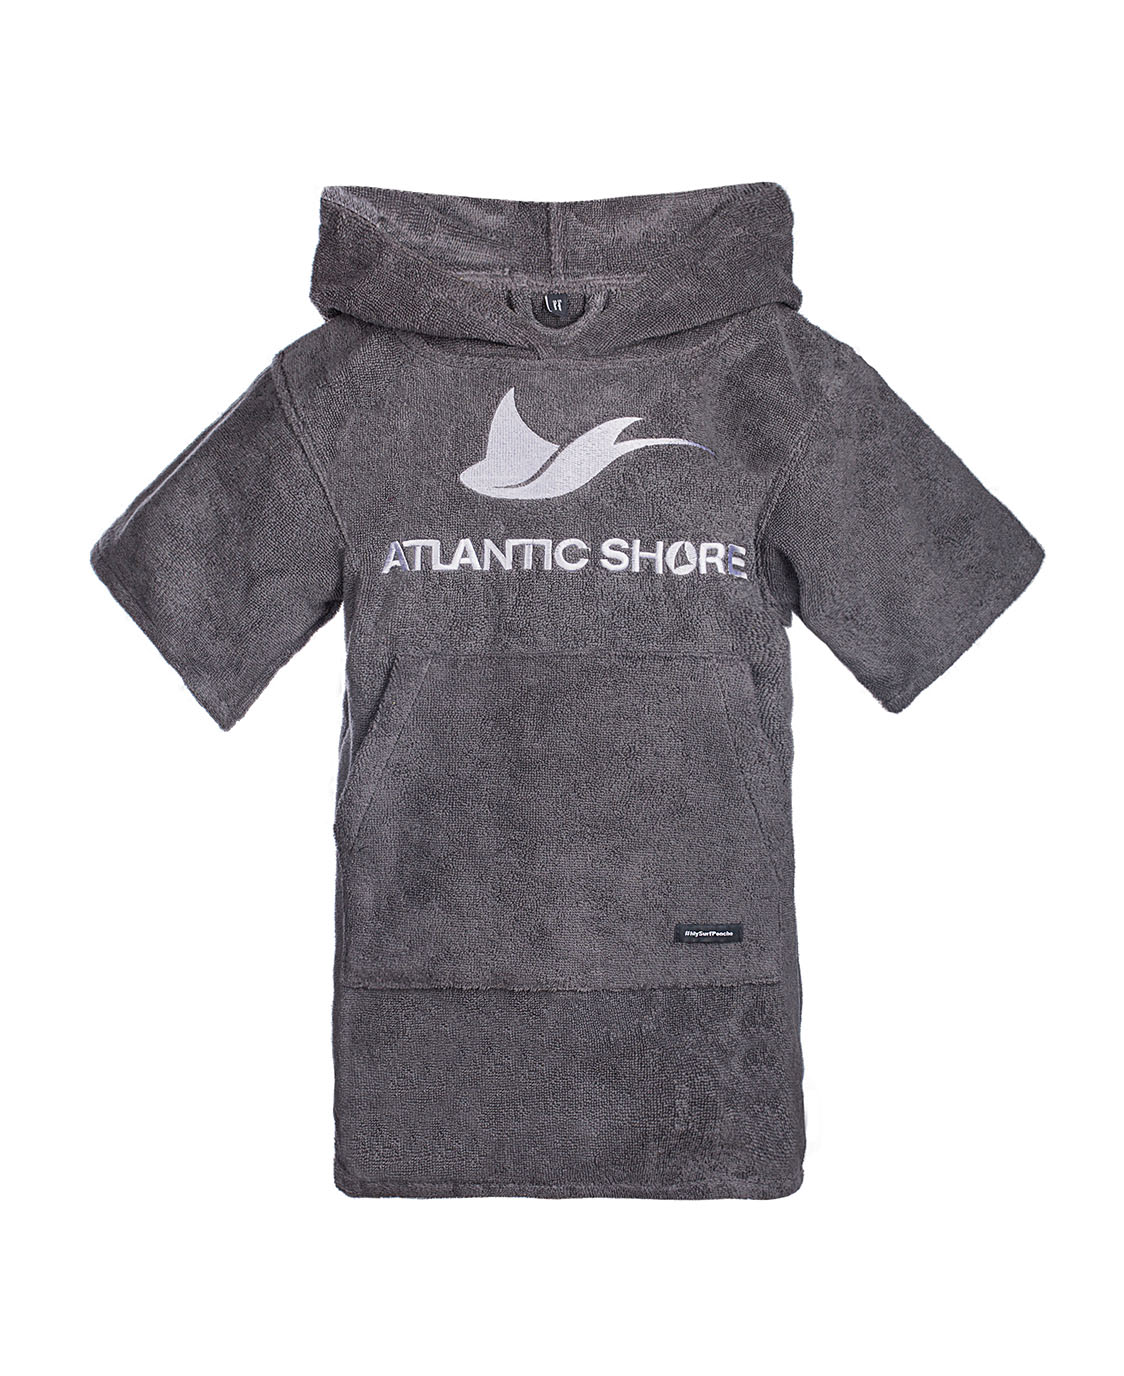 Atlantic Shore | Surf Poncho | Basic | Kids | Grey